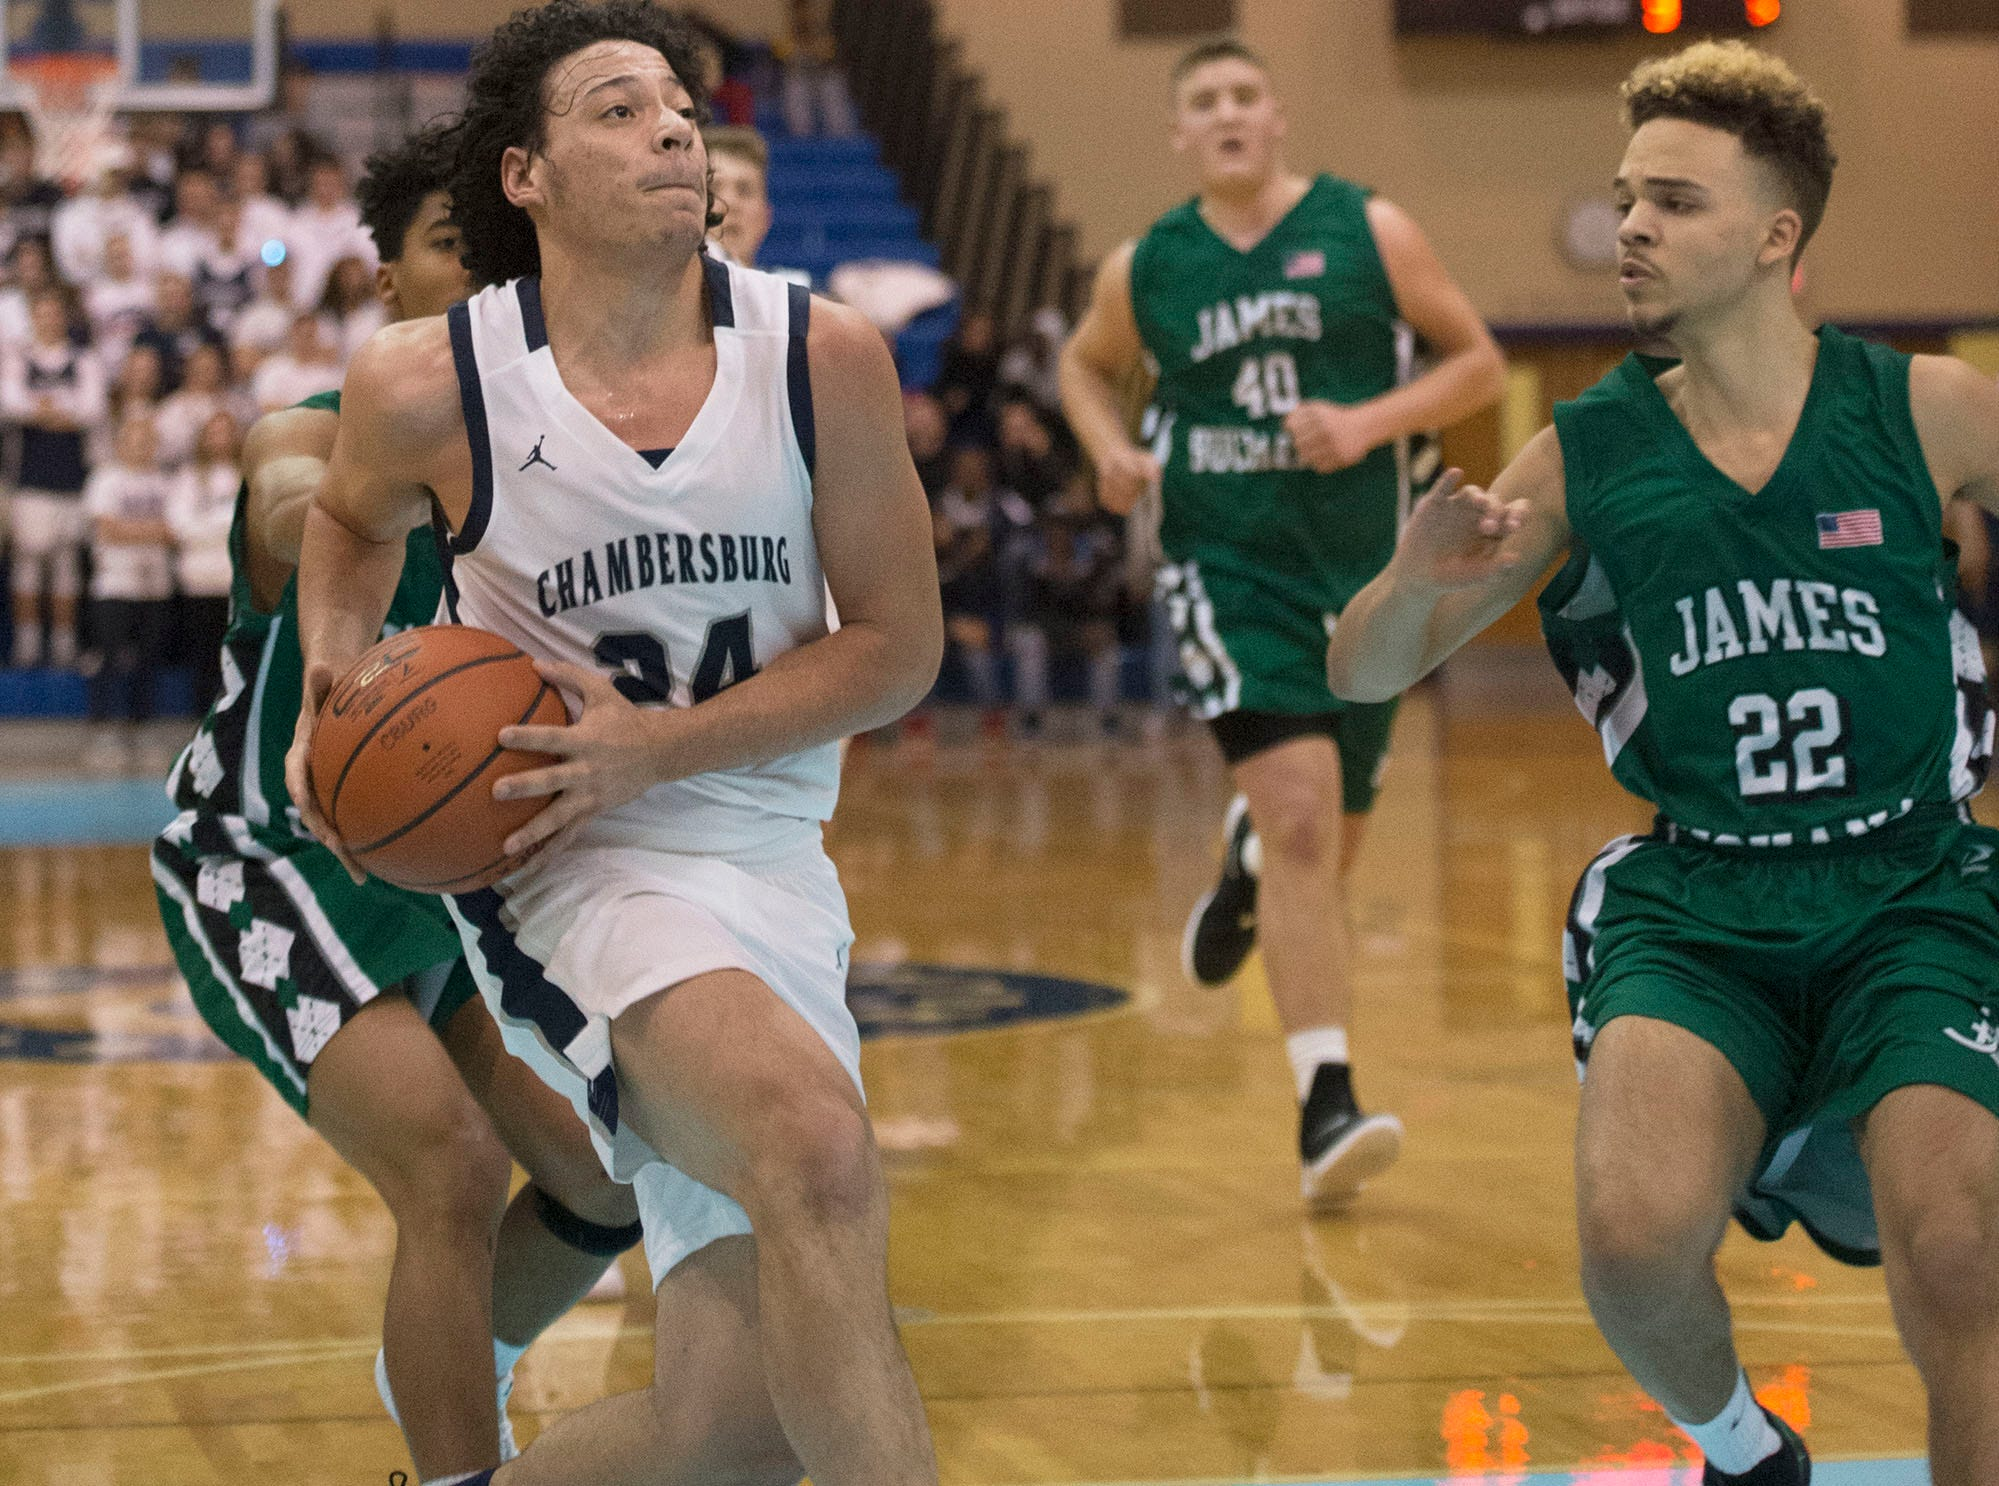 Chambersburg's Ty Holsopple drives to the basket in front of James Buchanan's Donavain Carrington (22). Chambersburg played James Buchanan boys during the Franklin County Tip-Off Tournament, Friday, Dec. 7, 2018.